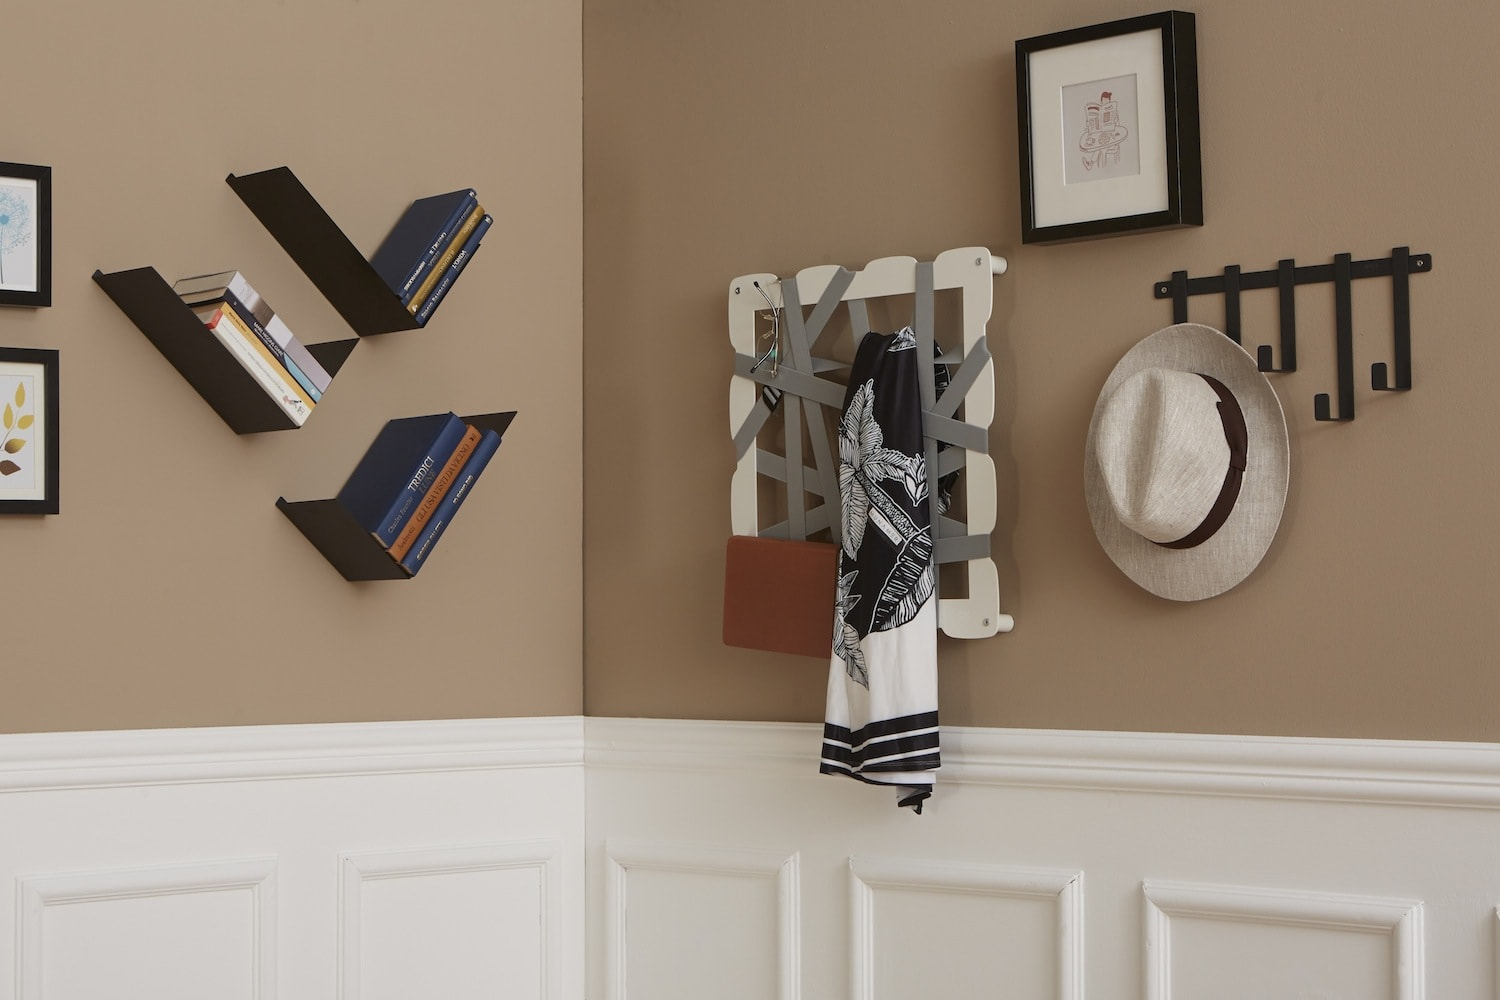 Appendiabiti Da Muro Originali notes wall-mounted coat rack | mipiacemolto